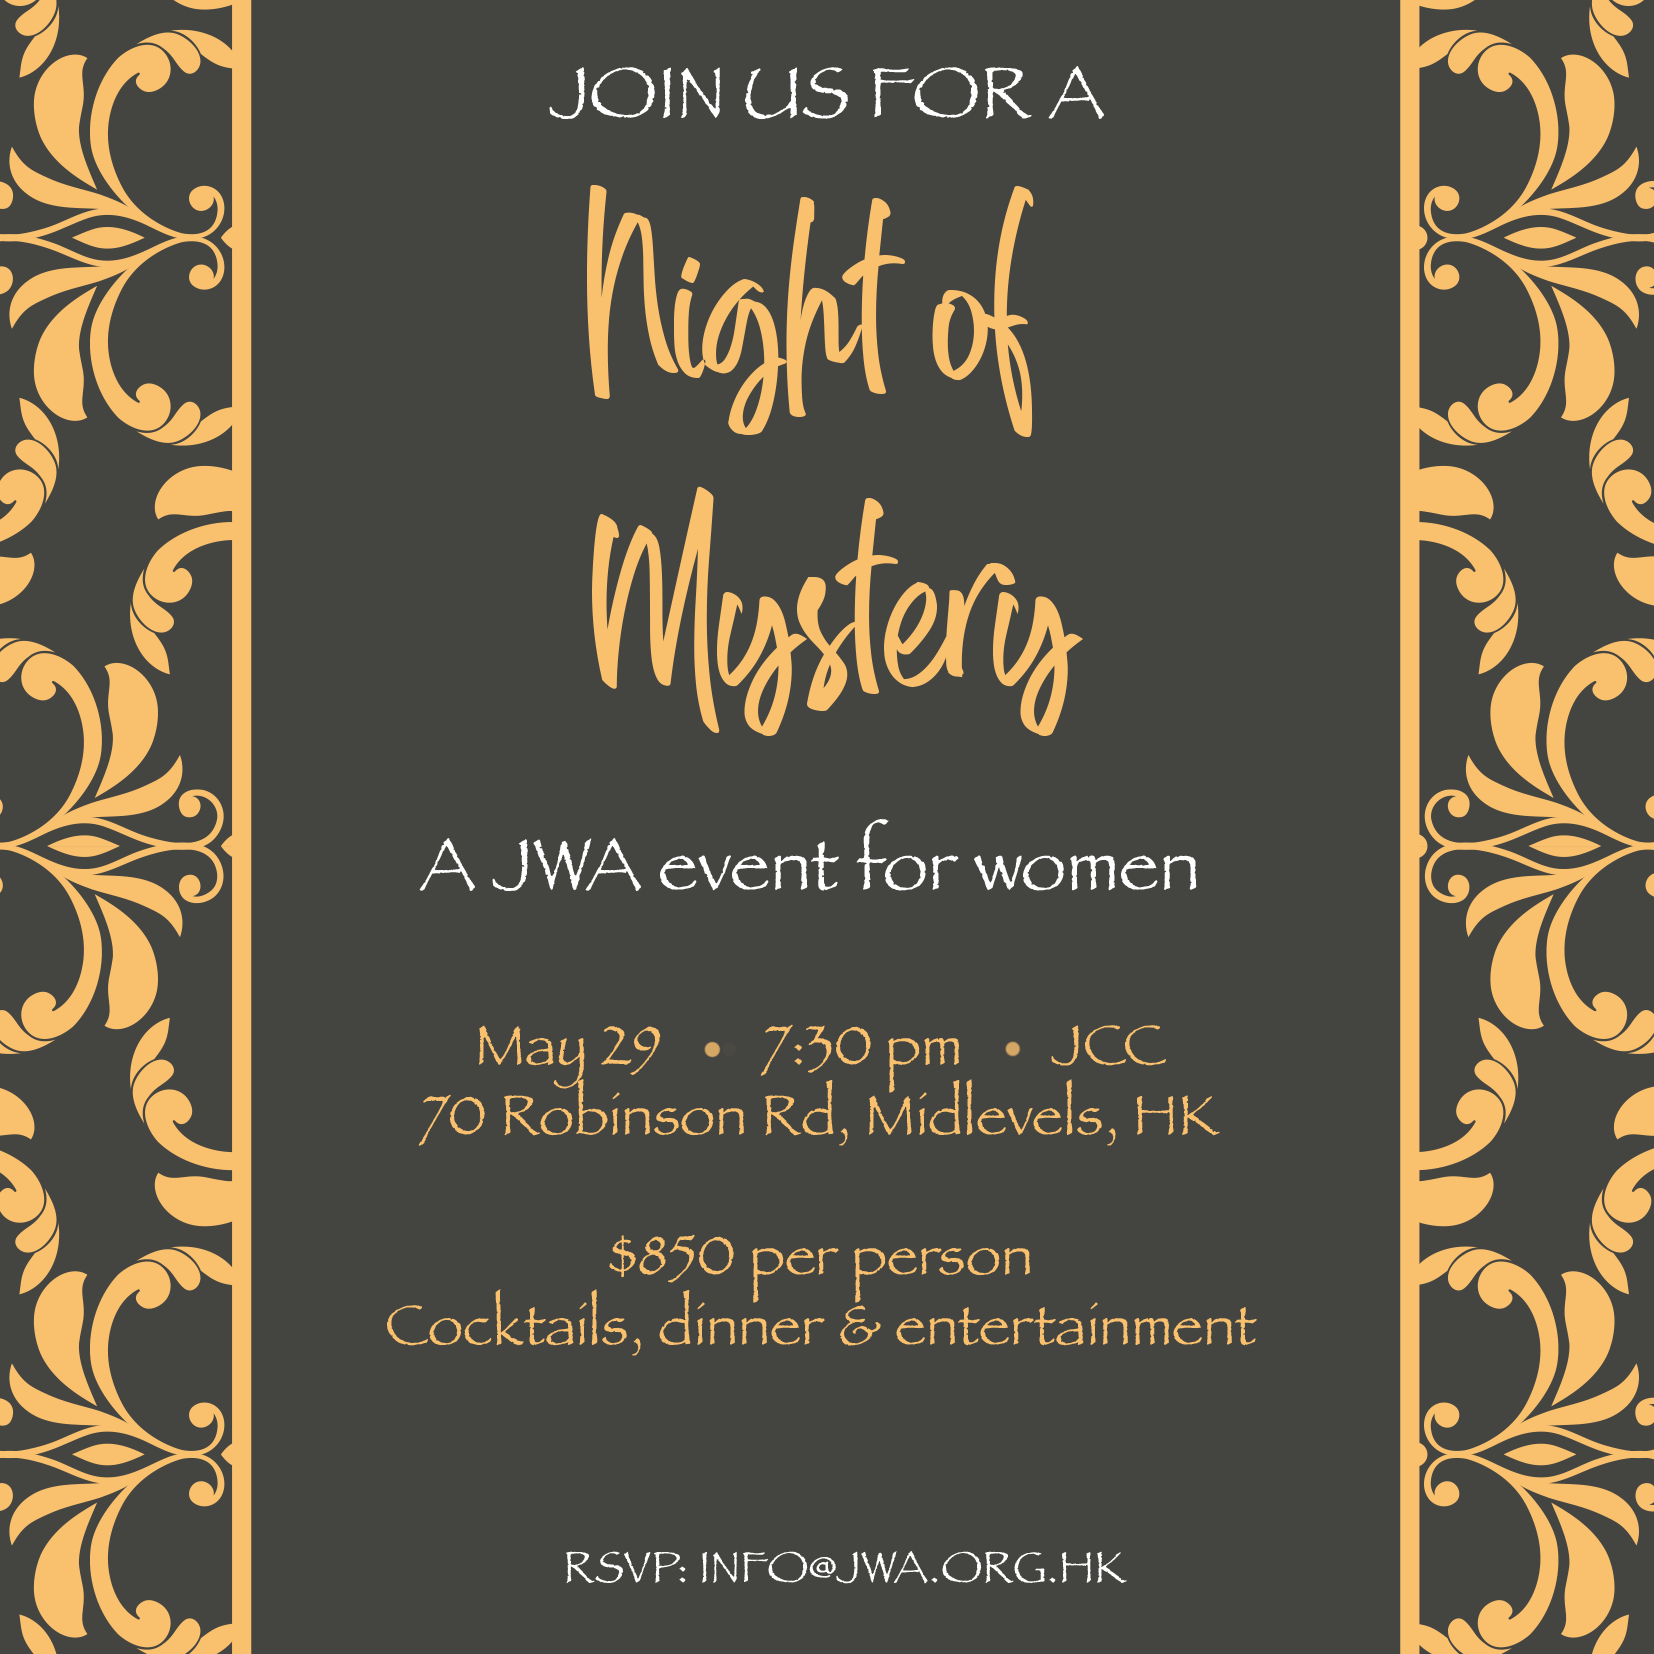 JWA Women's Event - A Night of Mystery - 29 May 2019